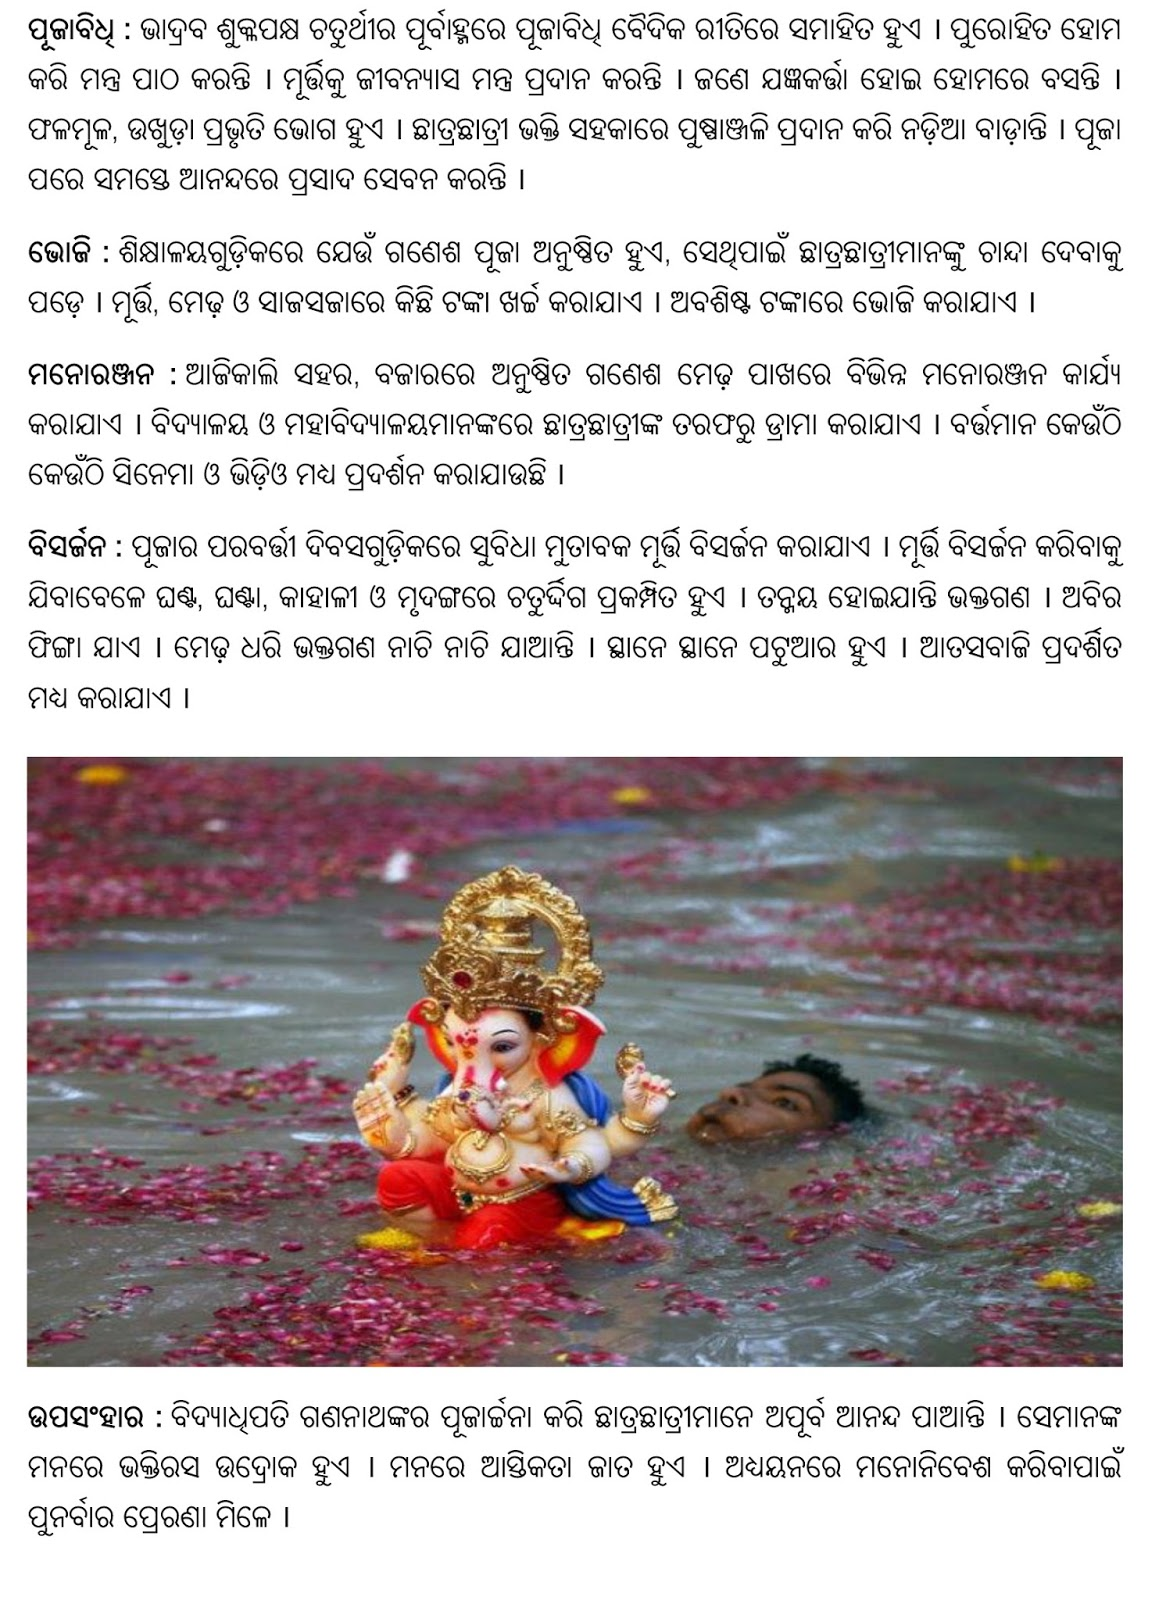 Short and Long Essay on Ganesh Chaturthi for Students